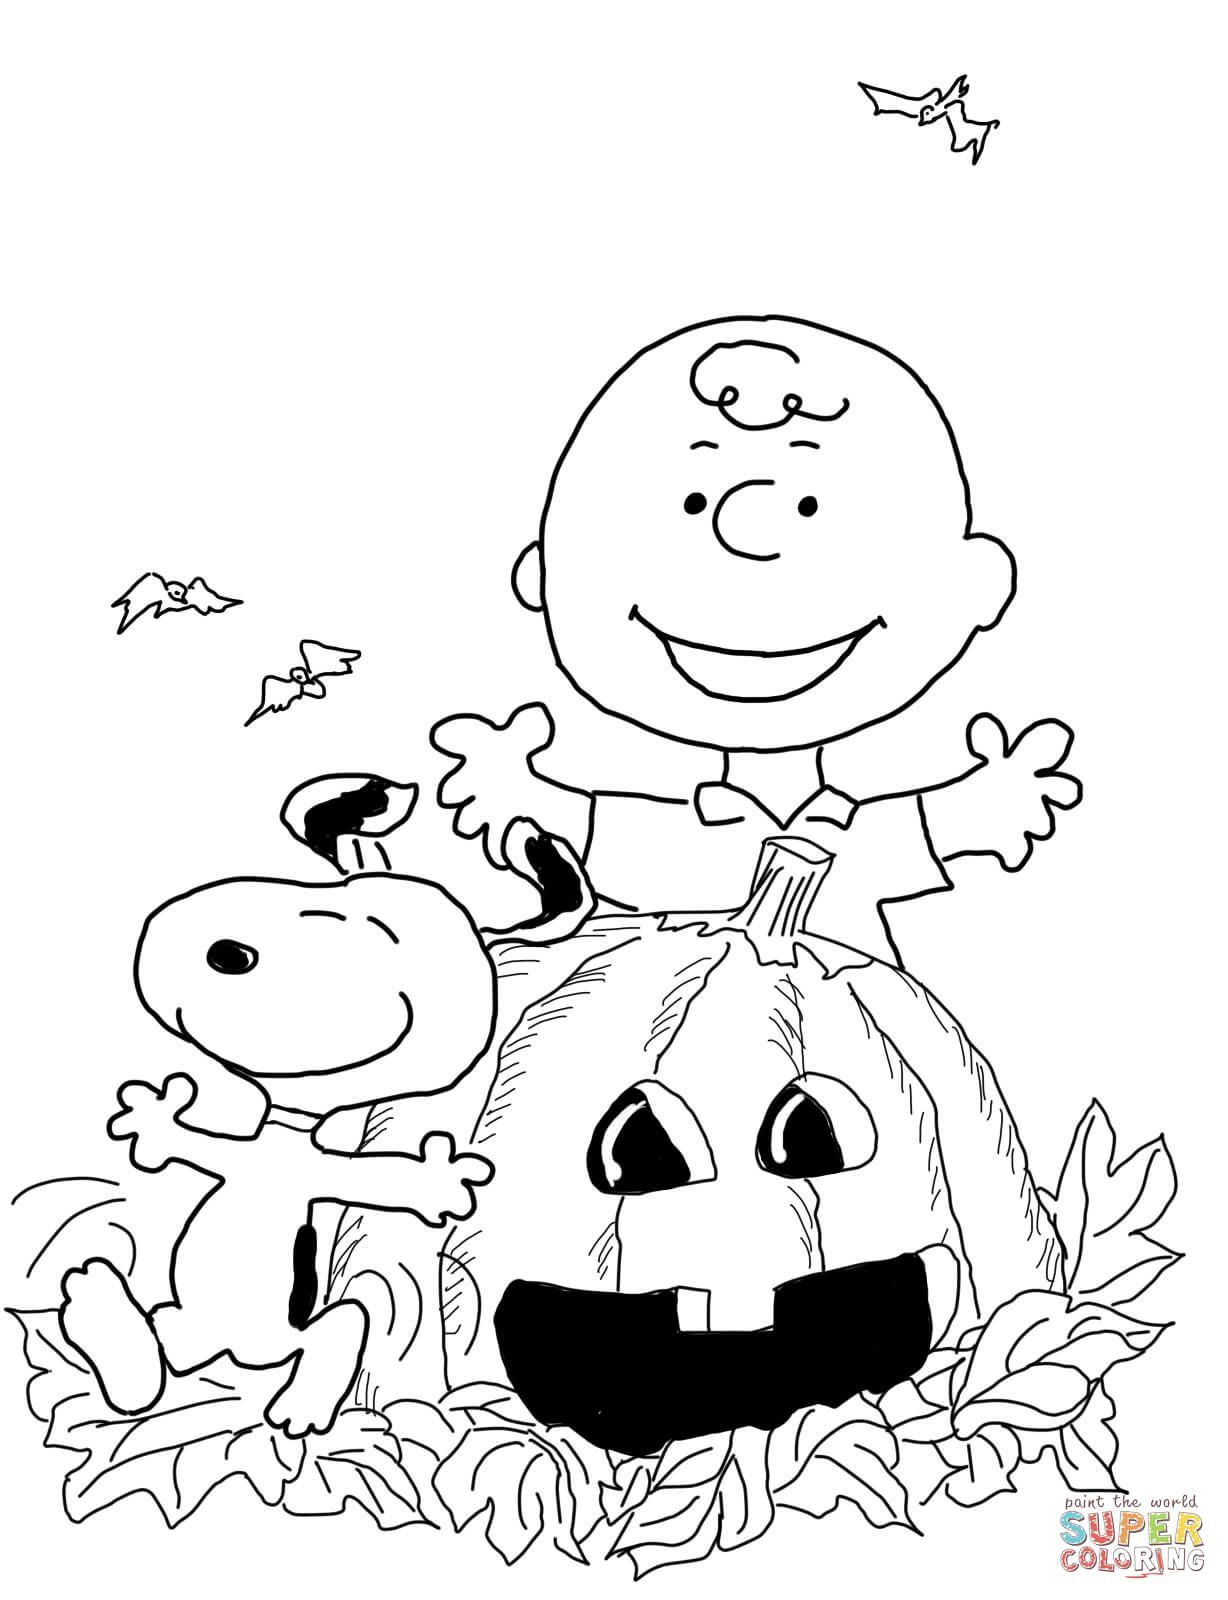 Halloween Coloring Pages Charlie Brown Snoopy Coloring Pages Halloween Coloring Sheets Pumpkin Coloring Pages